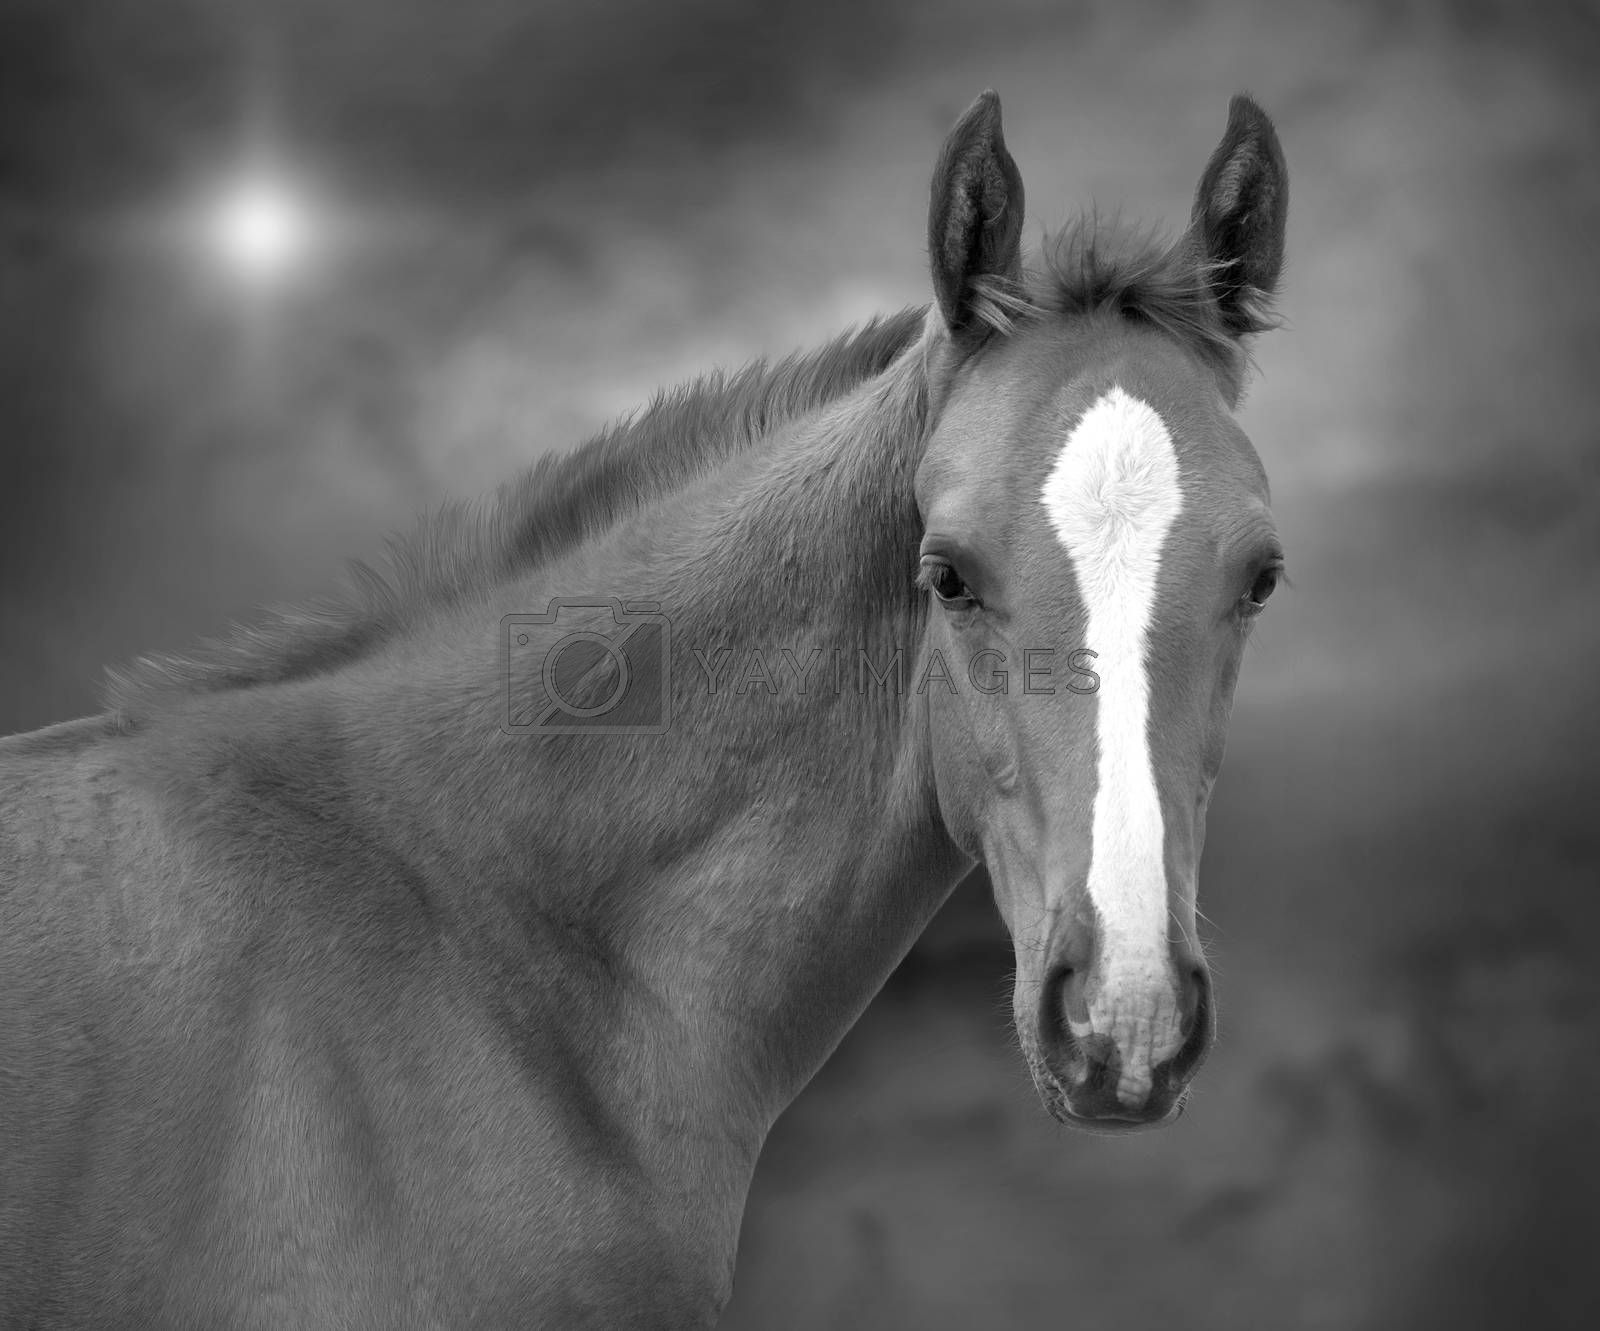 Monochrome portrait of a foal